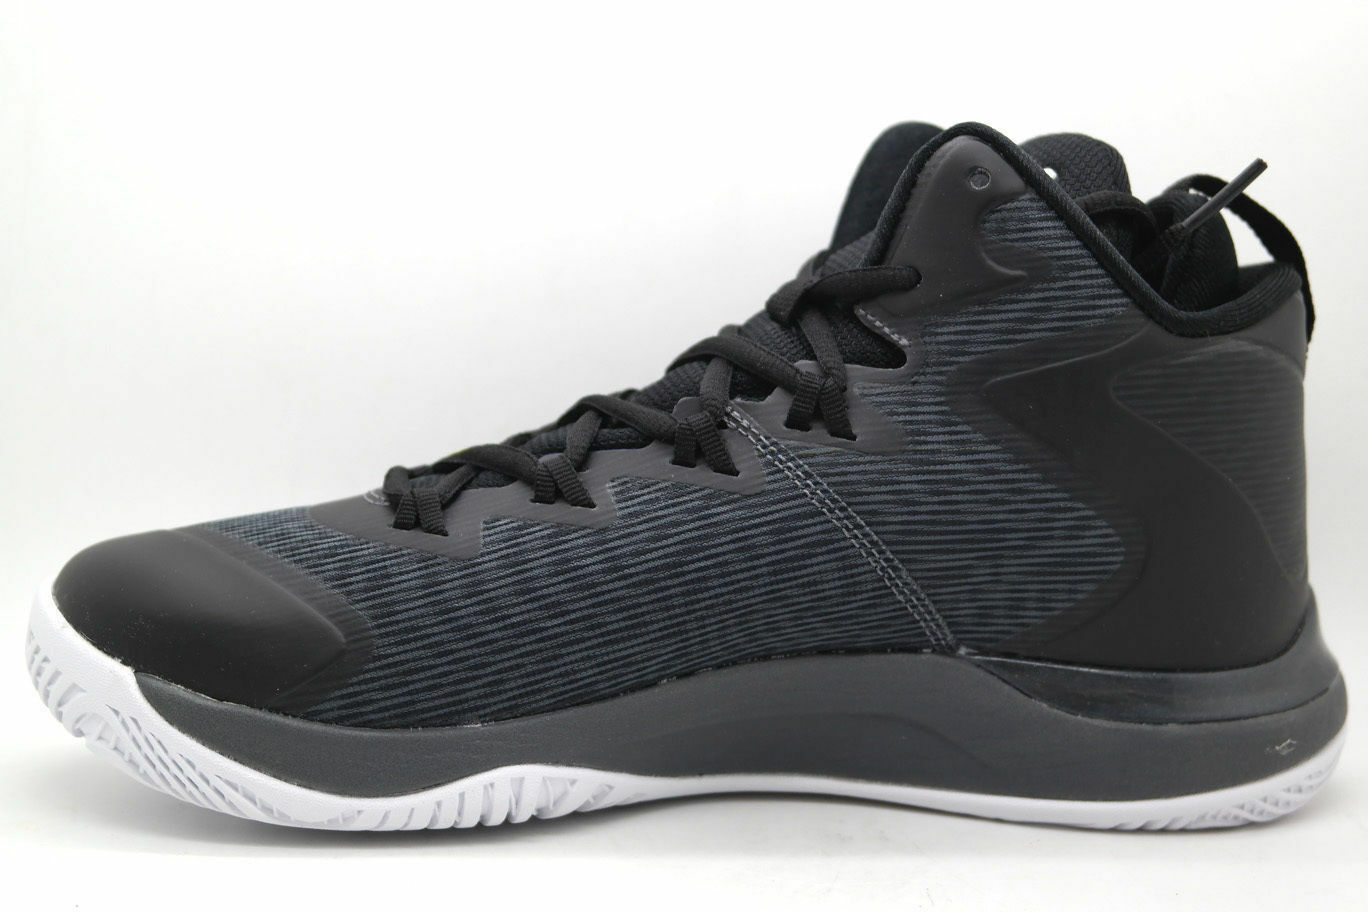 Nike Basketball Shoes Low Cut Black